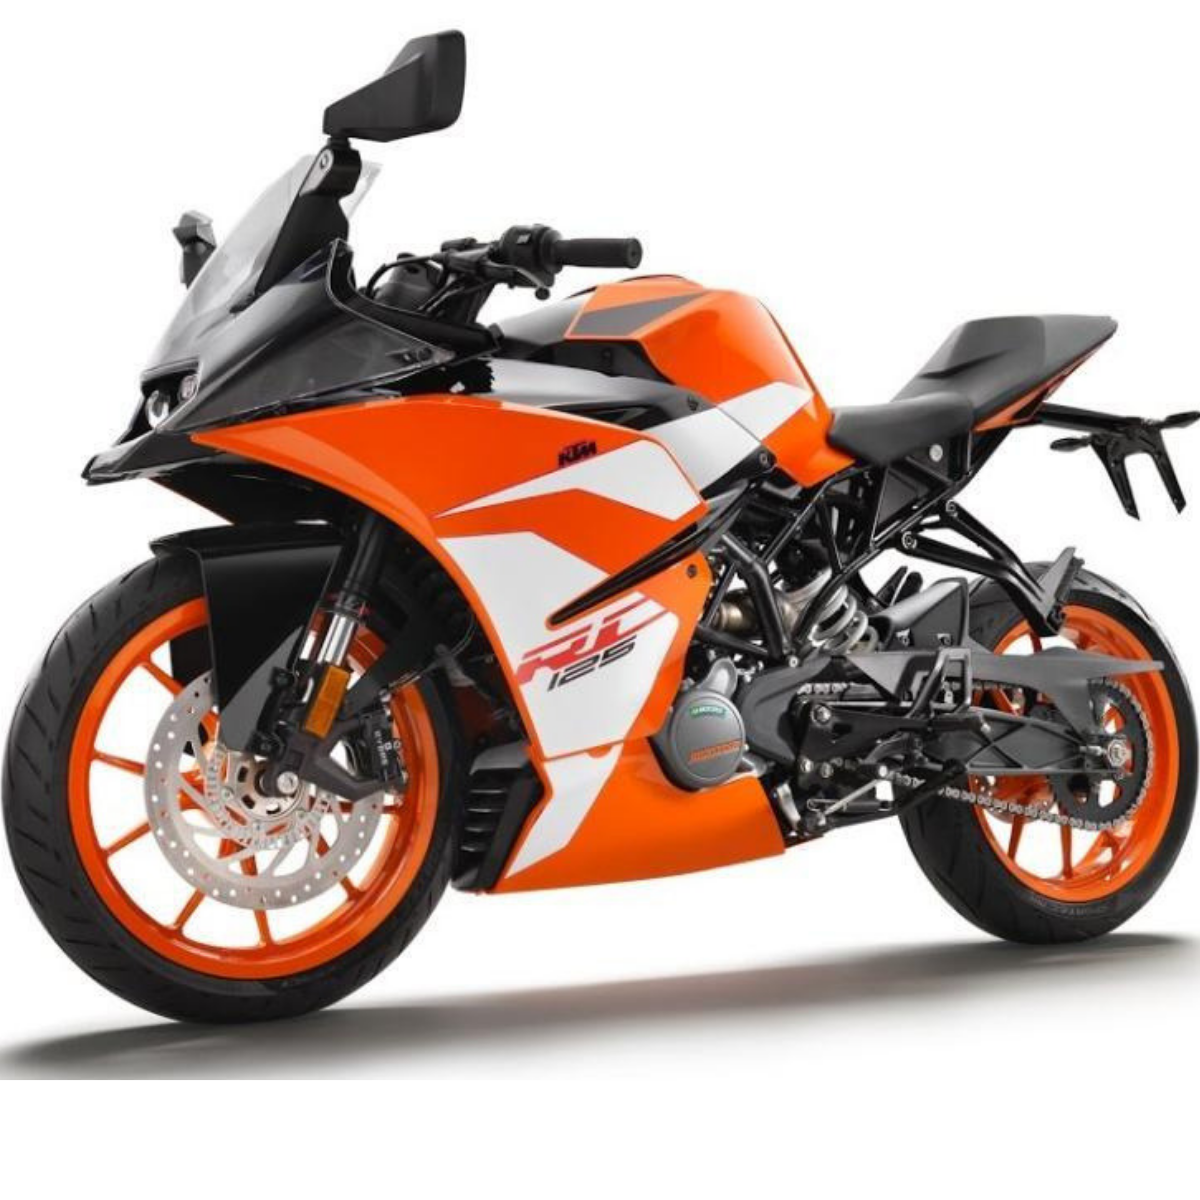 2019 KTM RC 125 ABS Officially Launched; Priced at INR 1